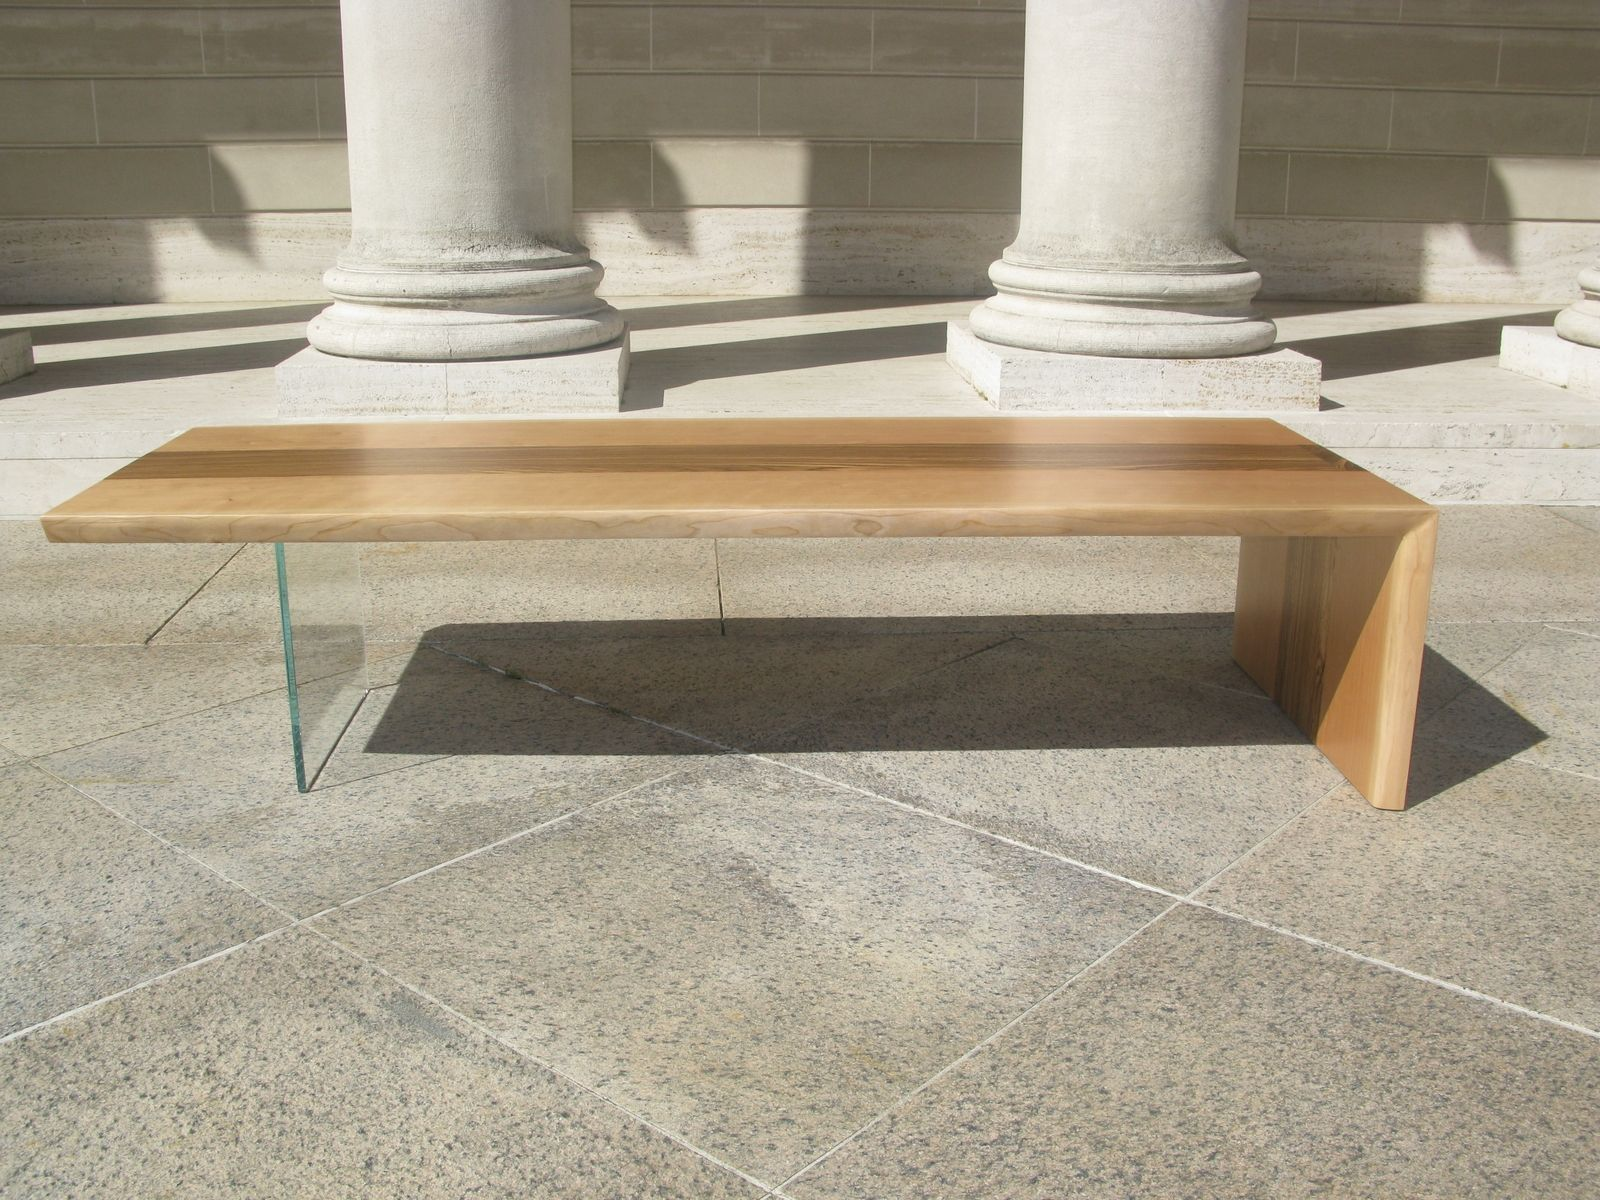 Hand Made Floating L Coffee Table by Design Trifecta LLC